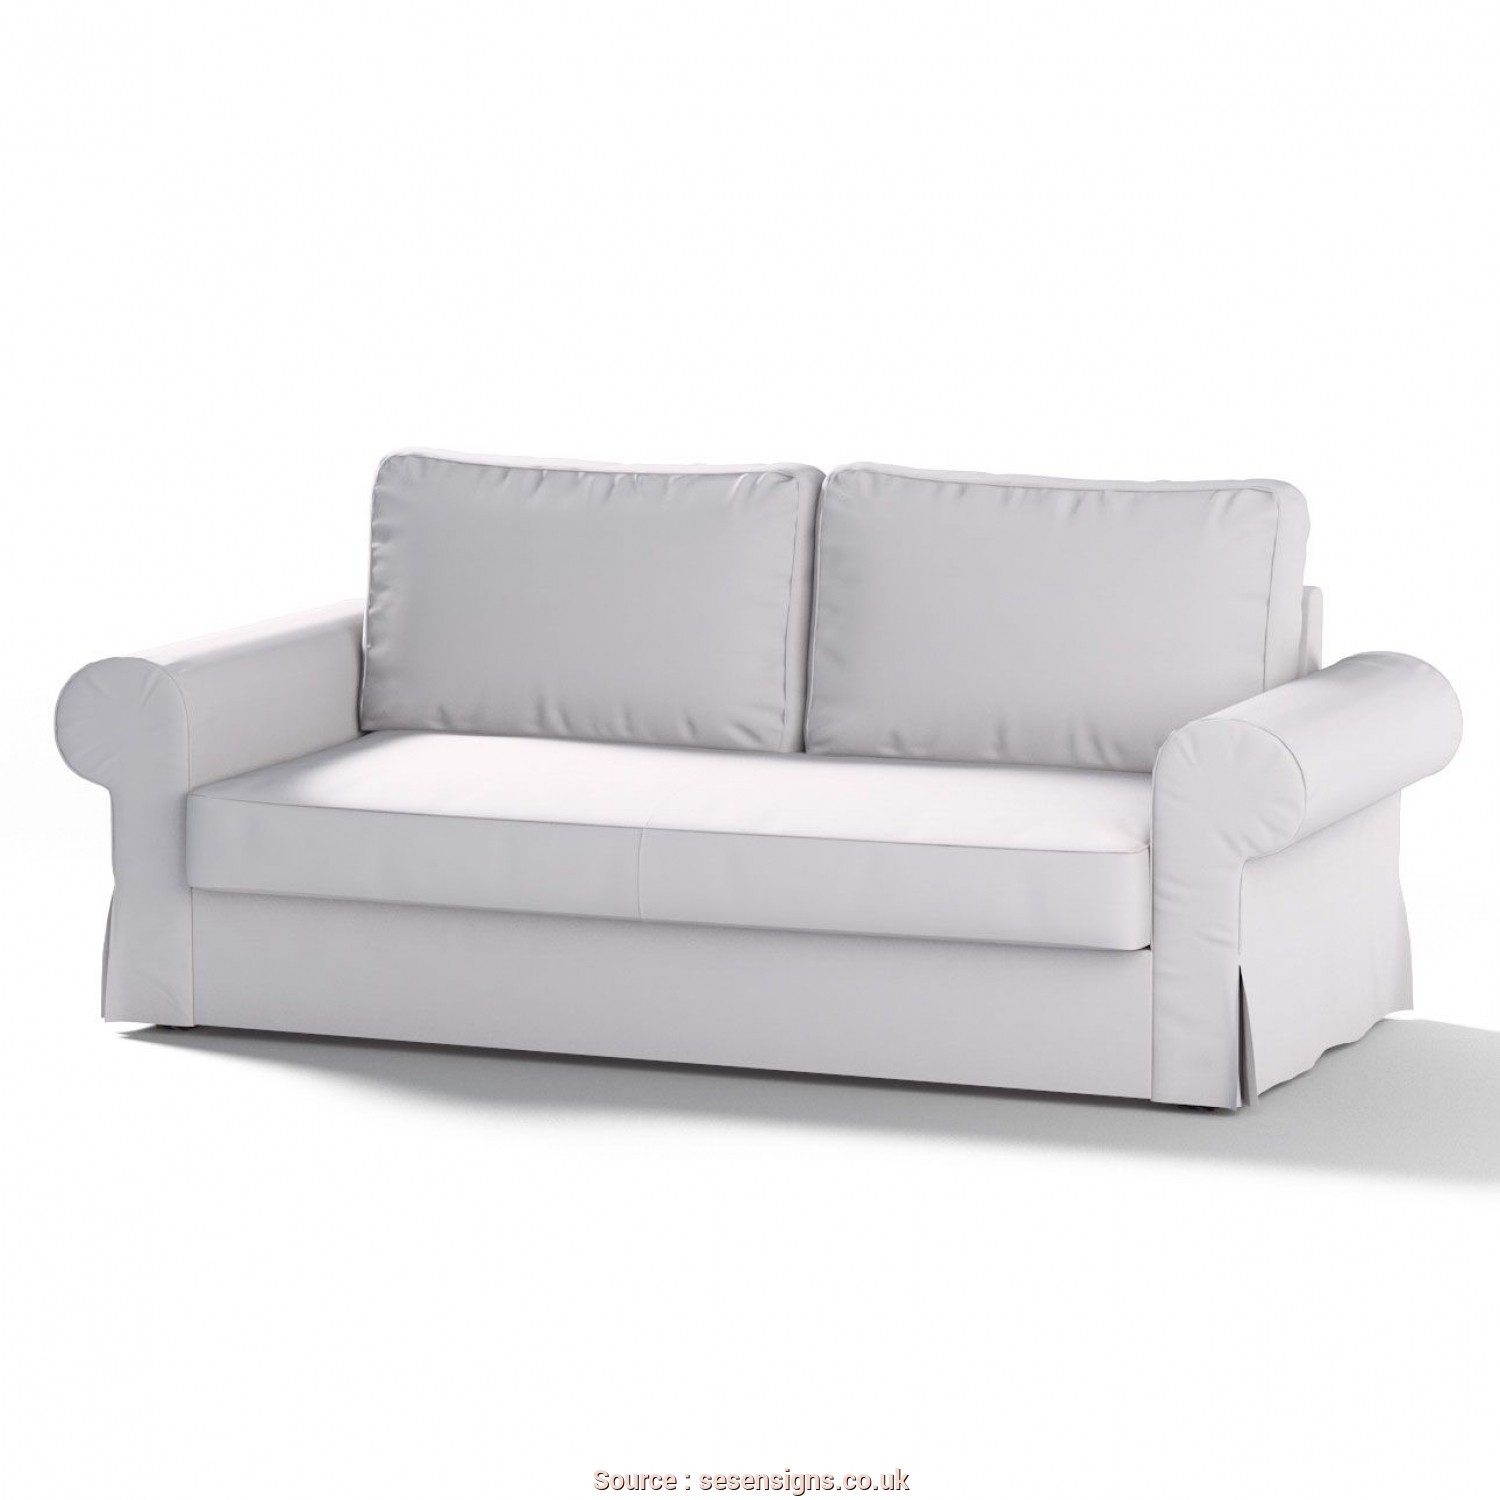 Ikea Backabro Garantie, Delizioso Backabro 3-Seat Sofa, Cover, Sesensigns